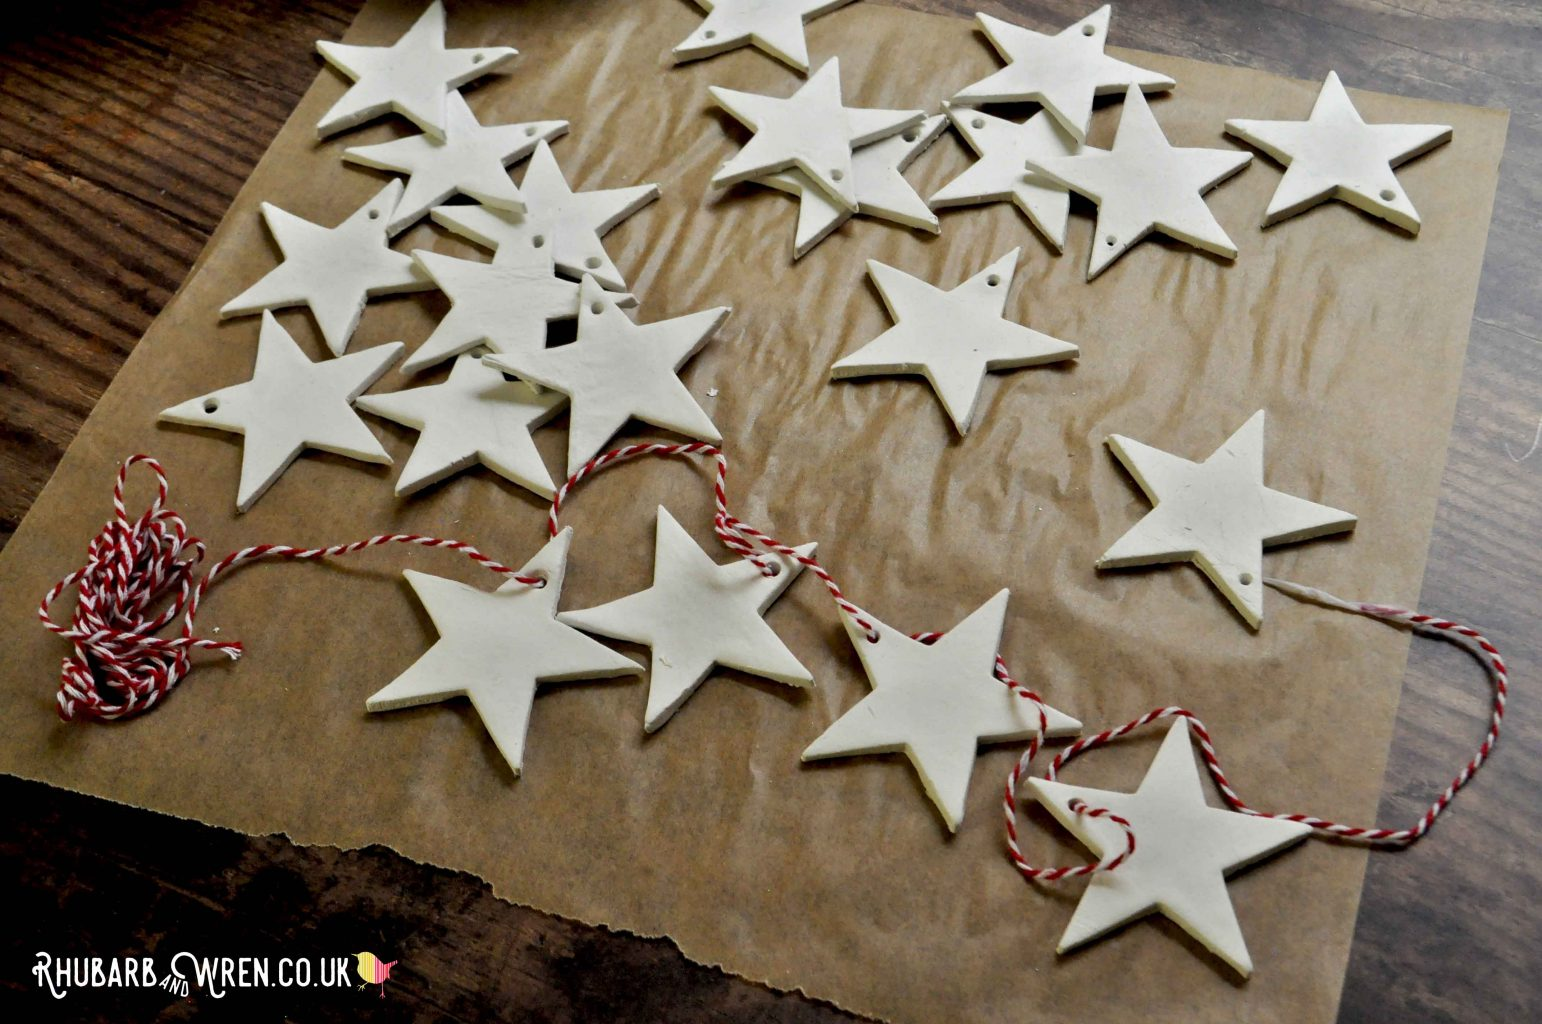 White clay stars threaded onto bakers twine for a DIY Christmas garland.